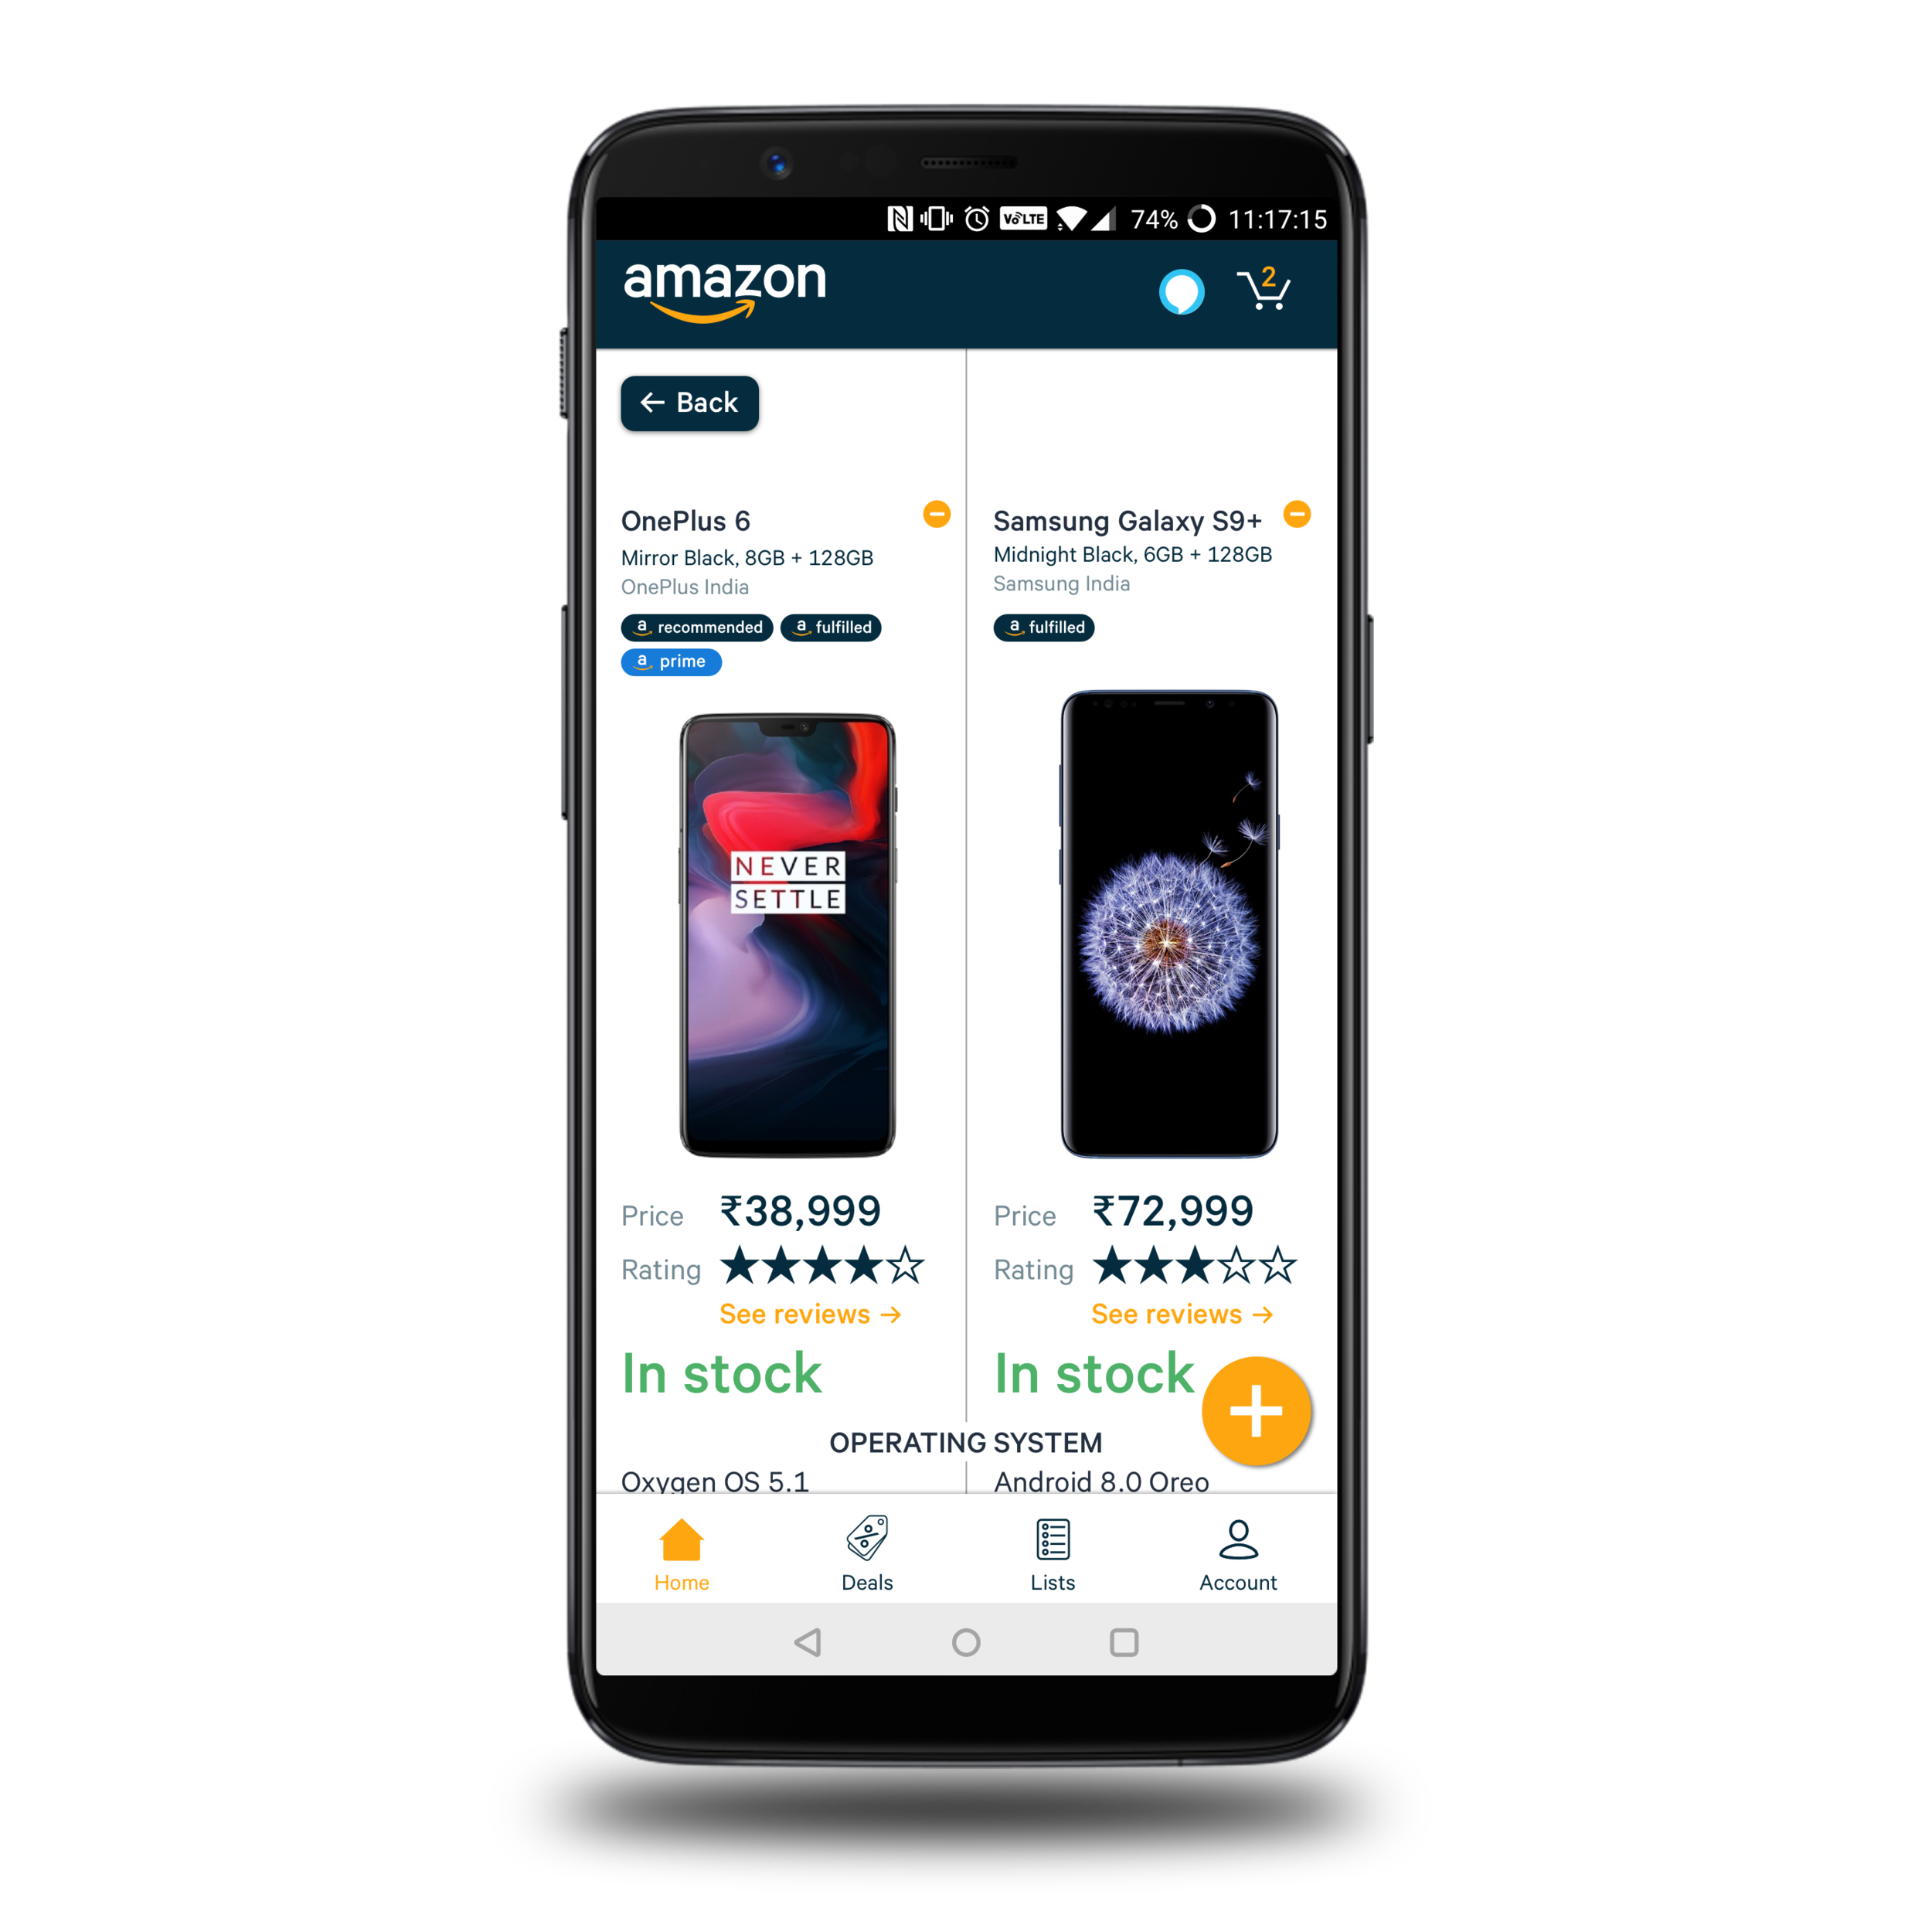 Compare side-by-side easily - People like to compare a broad range of items, and plan their purchases before making the final decision. Being able to compare products quickly and in-app helps speed up the purchase process.